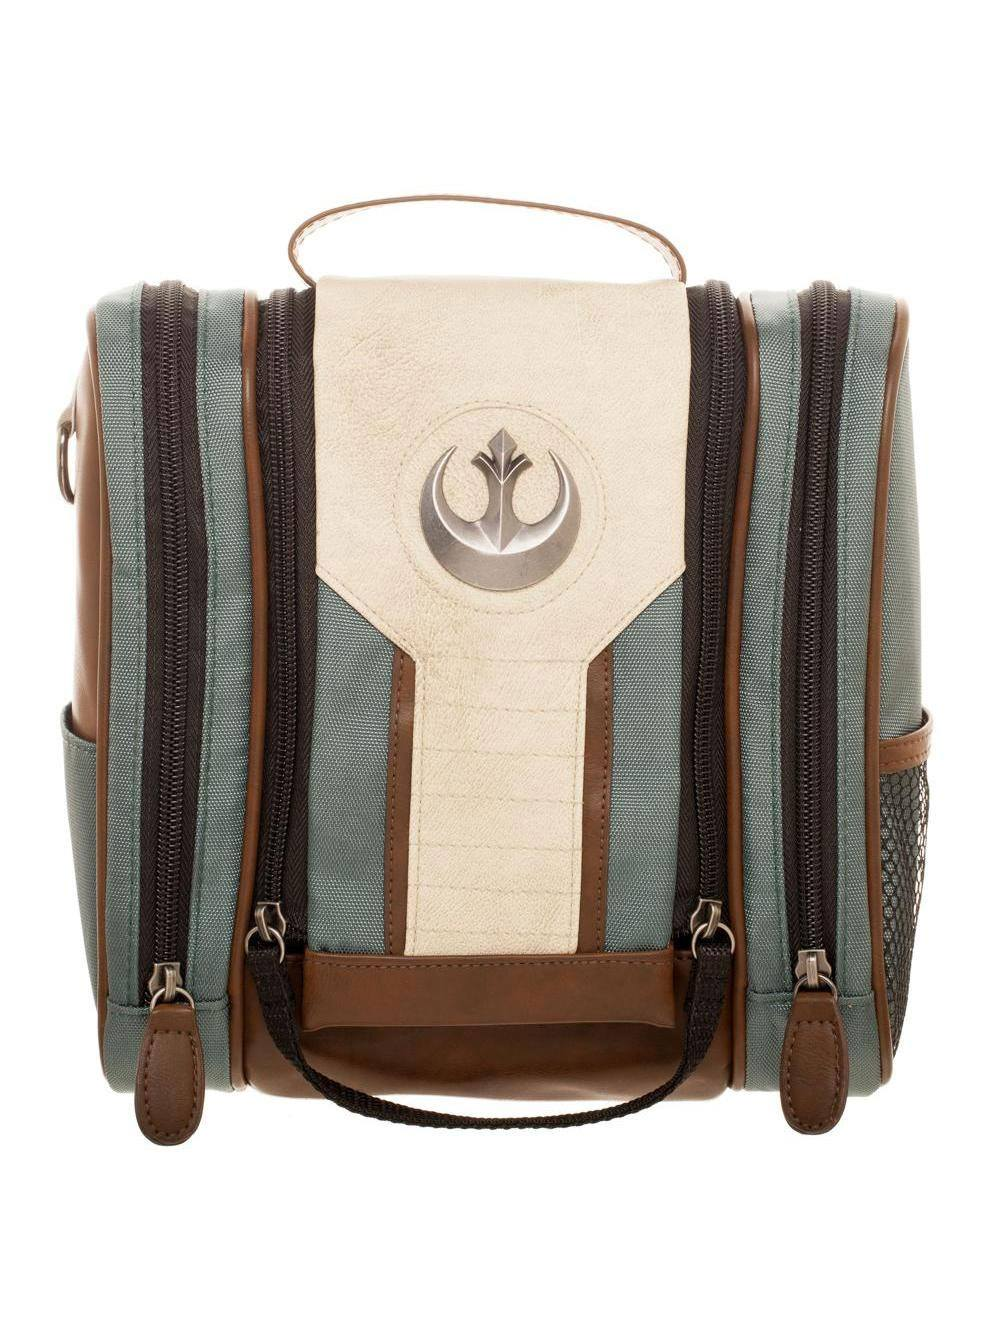 Star Wars Rogue One Travel Kit Rebel